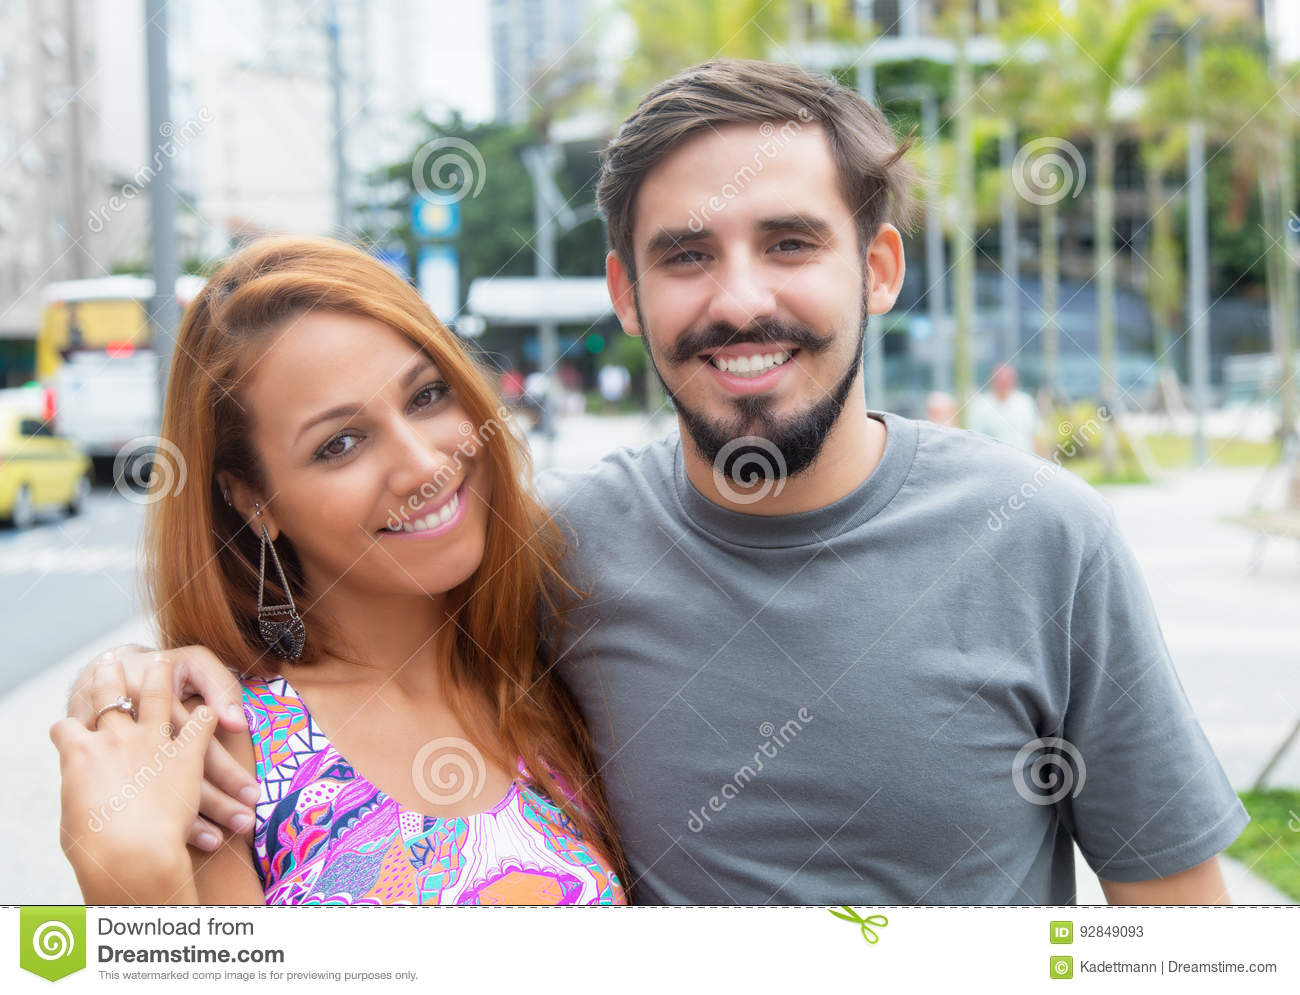 Hipster love couple outdoor in the city